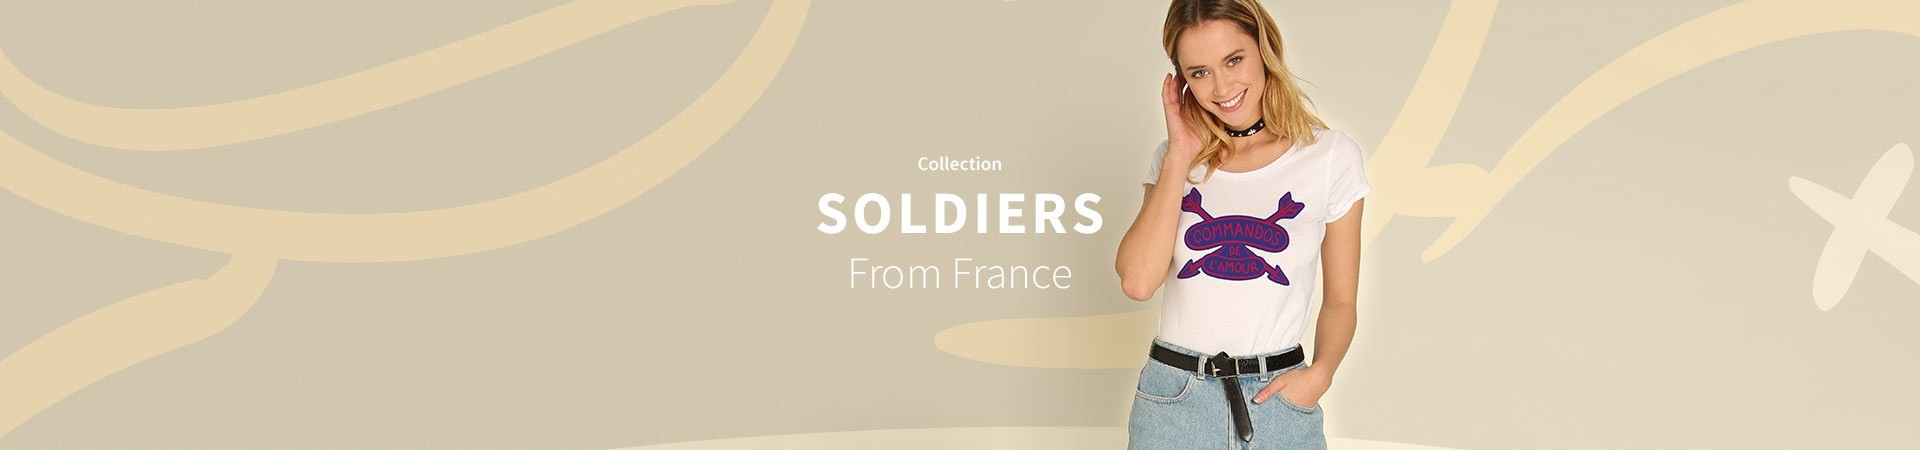 Soldiers by Lighton